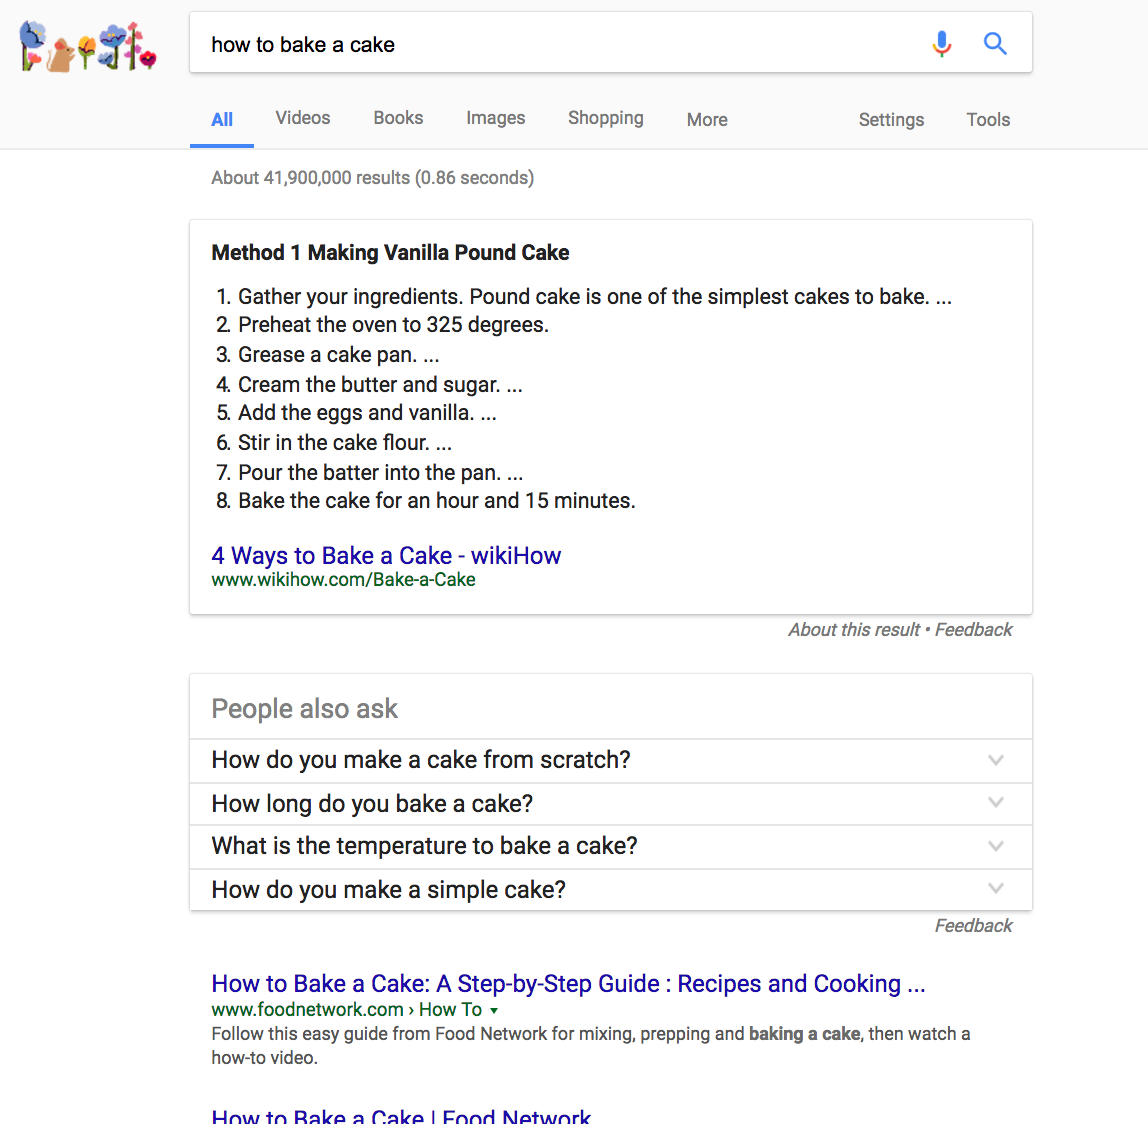 featured-snippet-example.png